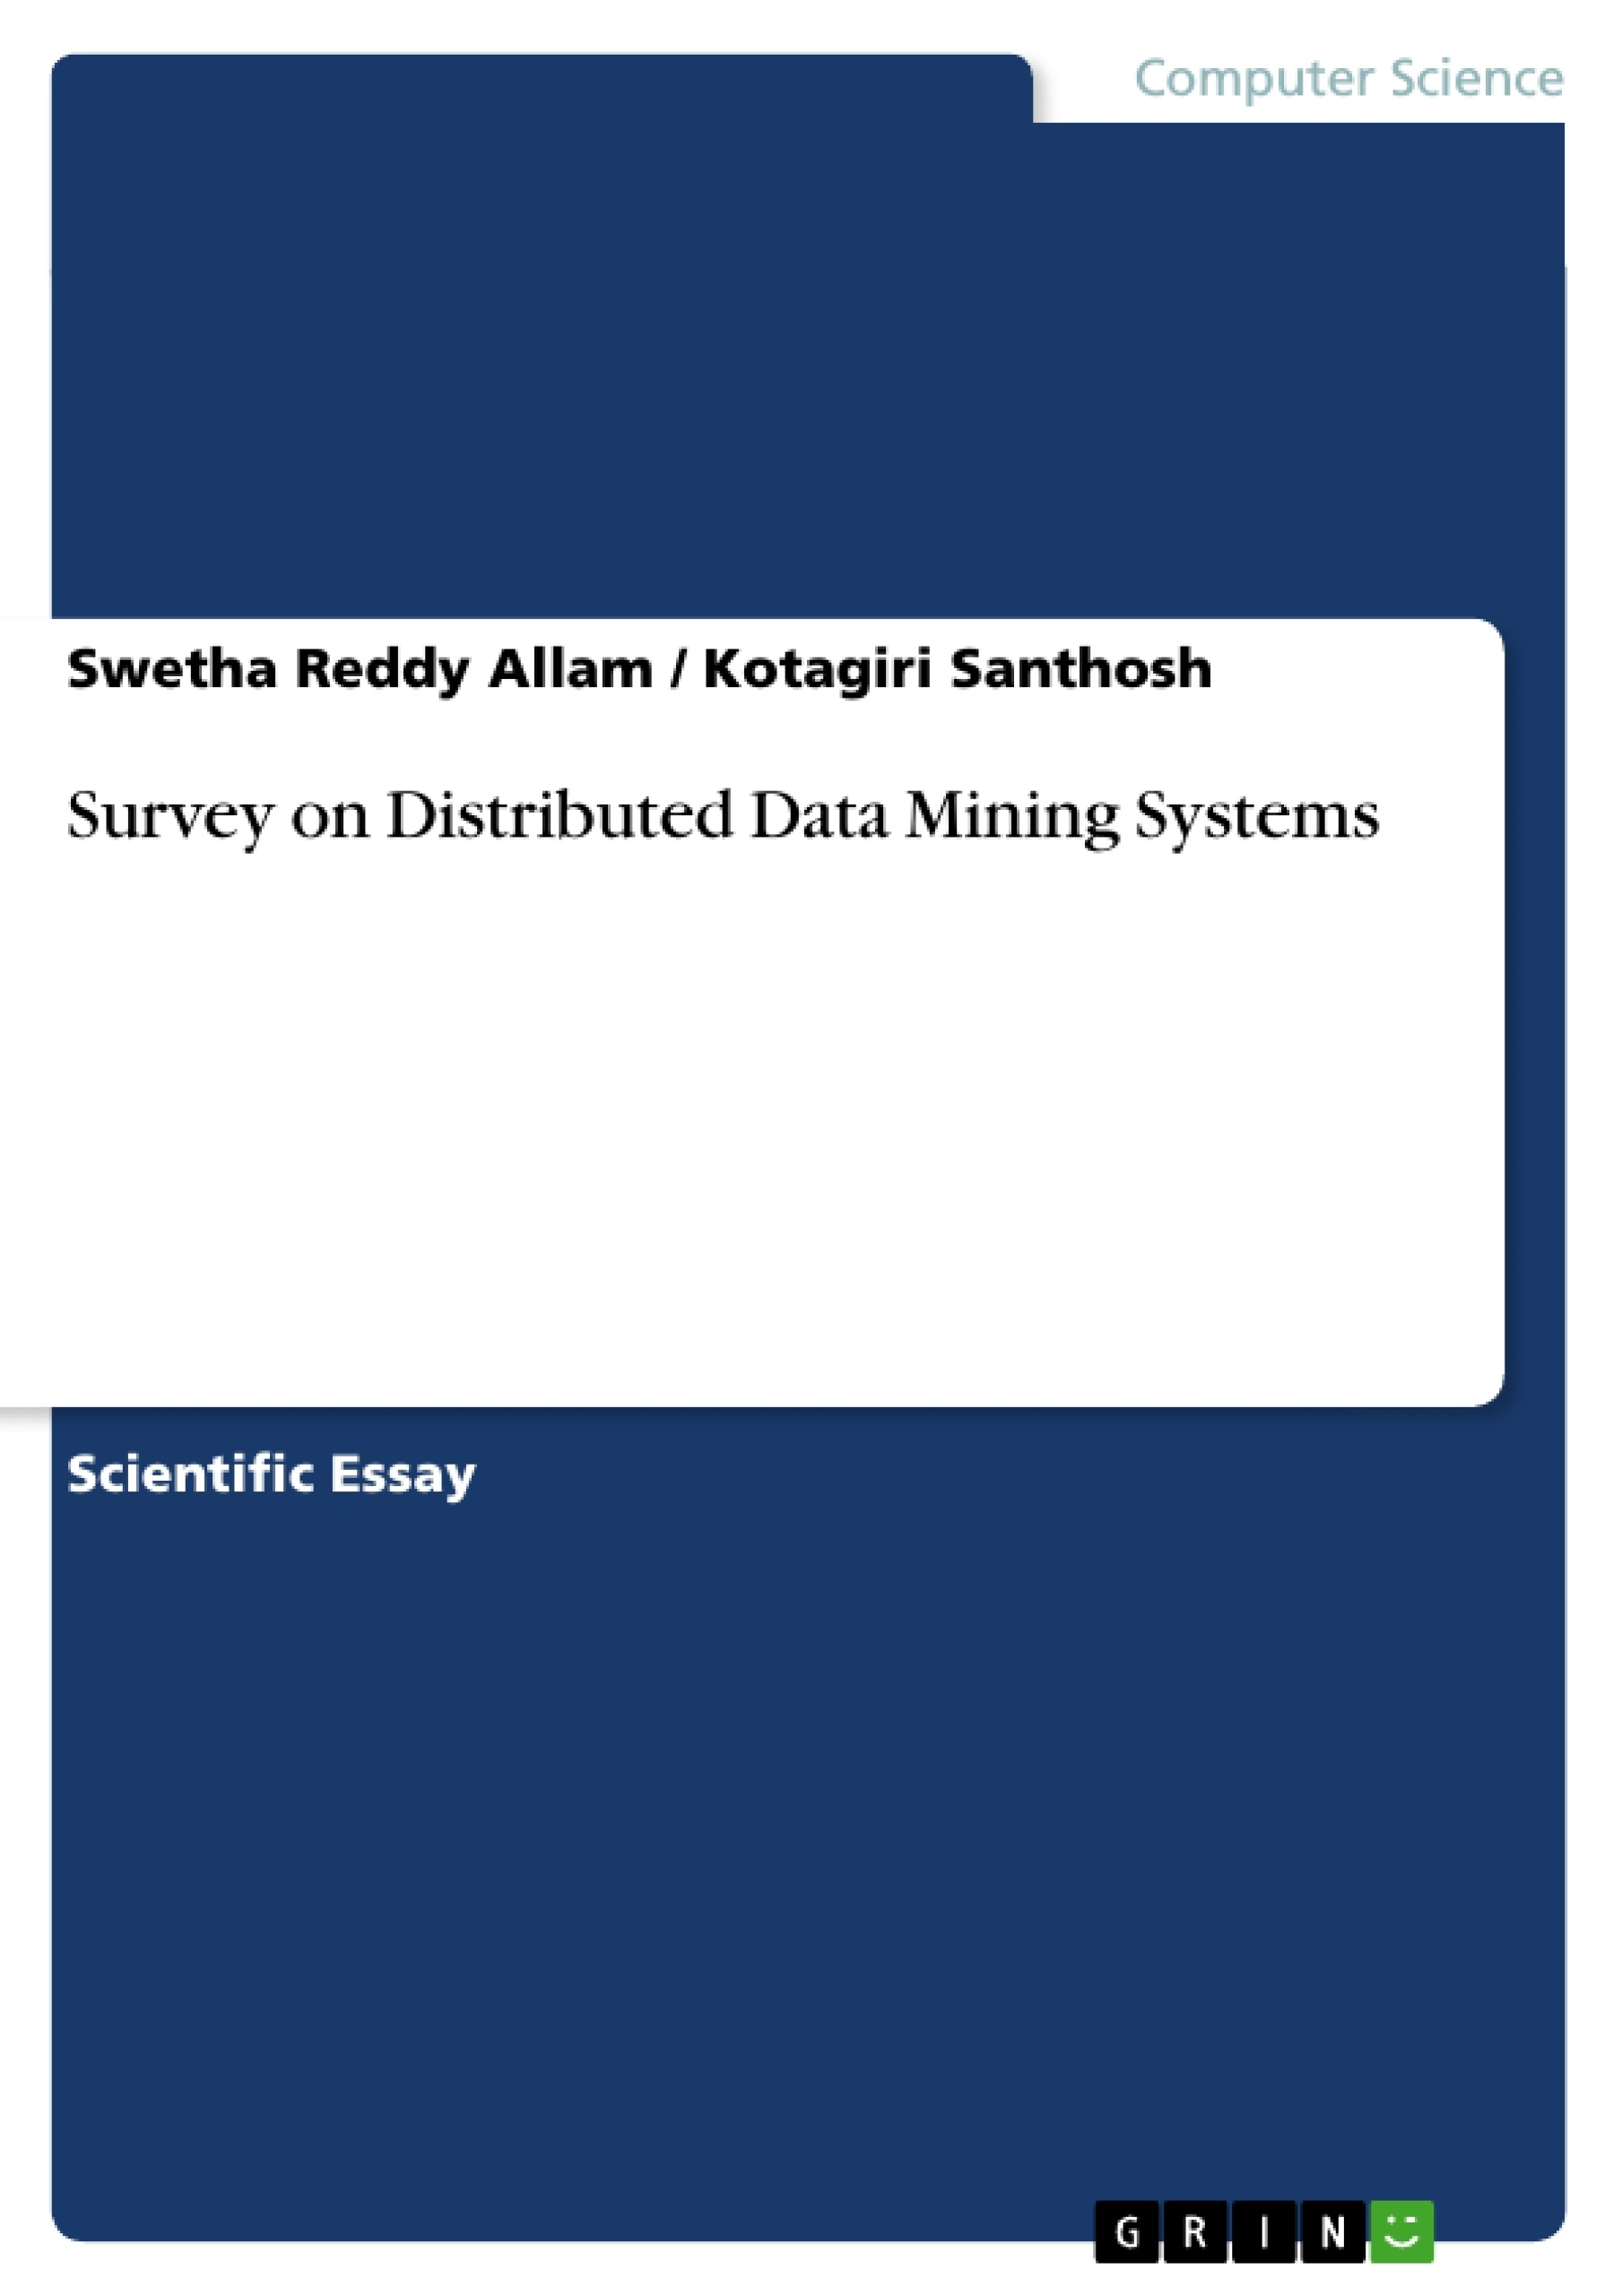 Title: Survey on Distributed Data Mining Systems